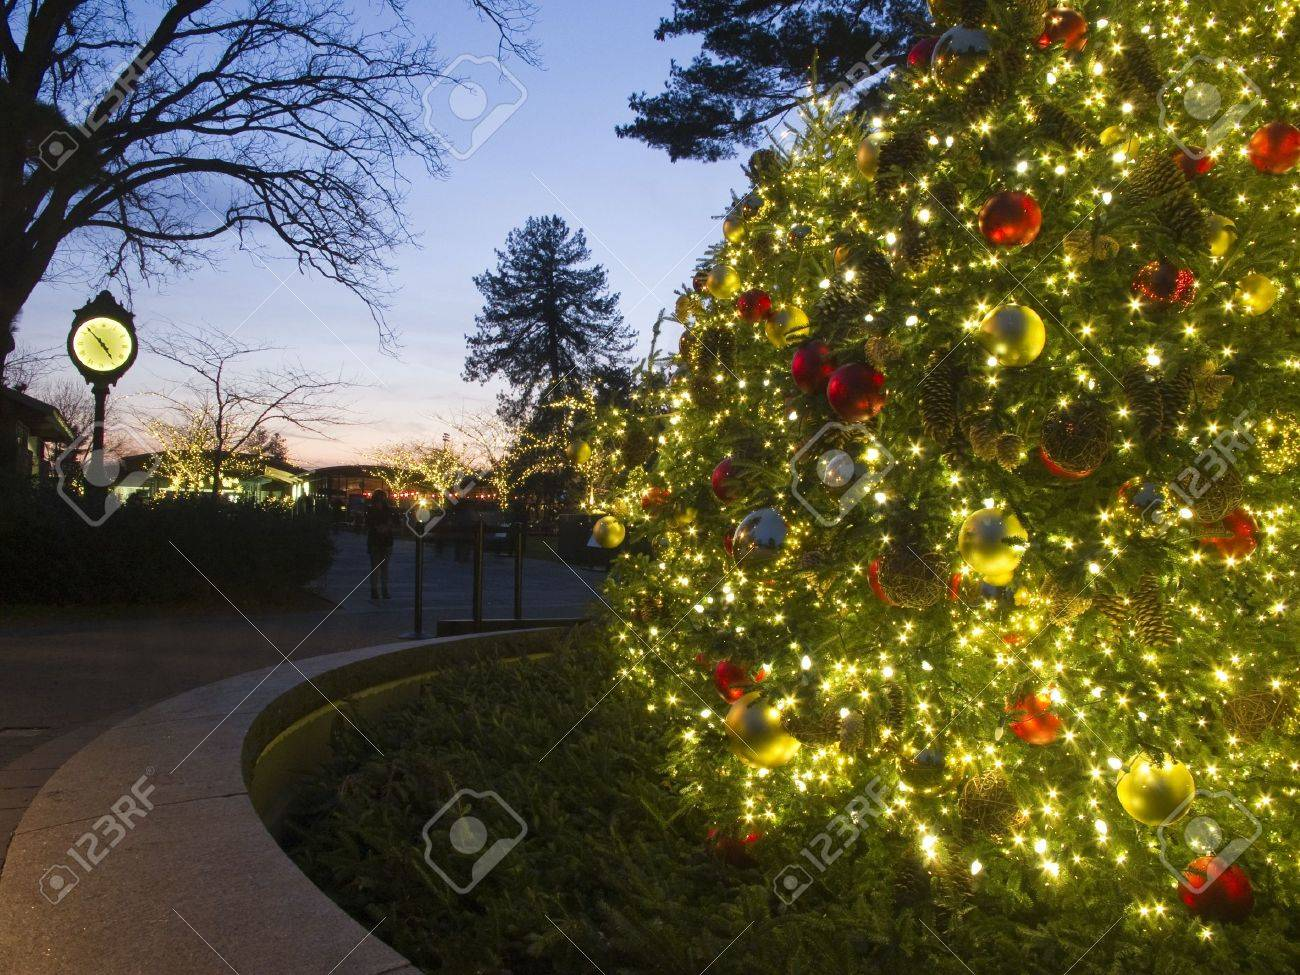 Outdoor Christmas Tree at Dusk, lit with bright colorful lights and Clock Stand in background Stock Photo - 12628834